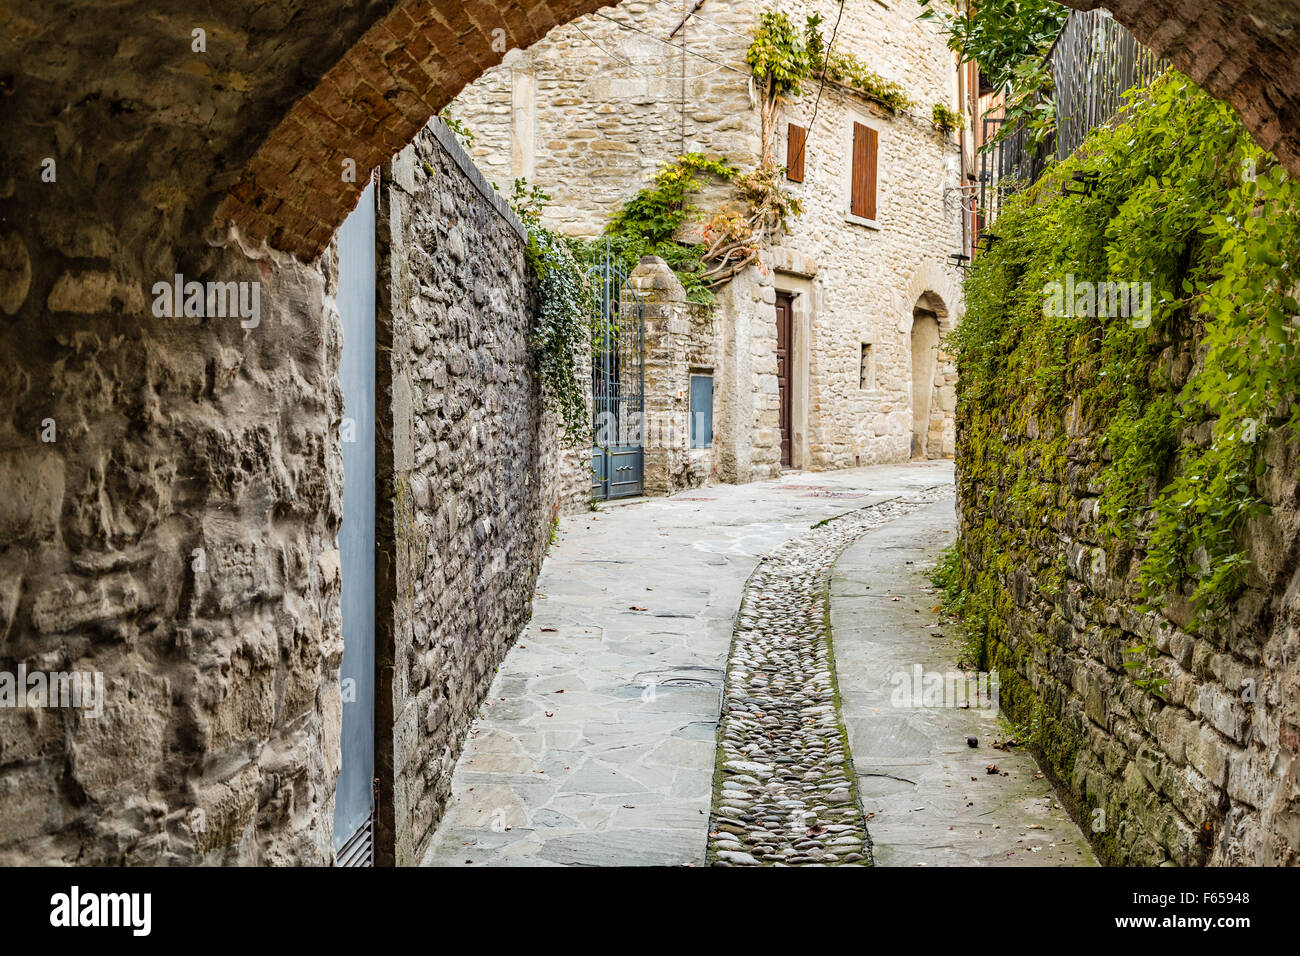 Alleys in medieval mountain village in Tuscany characterized by houses with walls of stones derived from the Renaissance Stock Photo